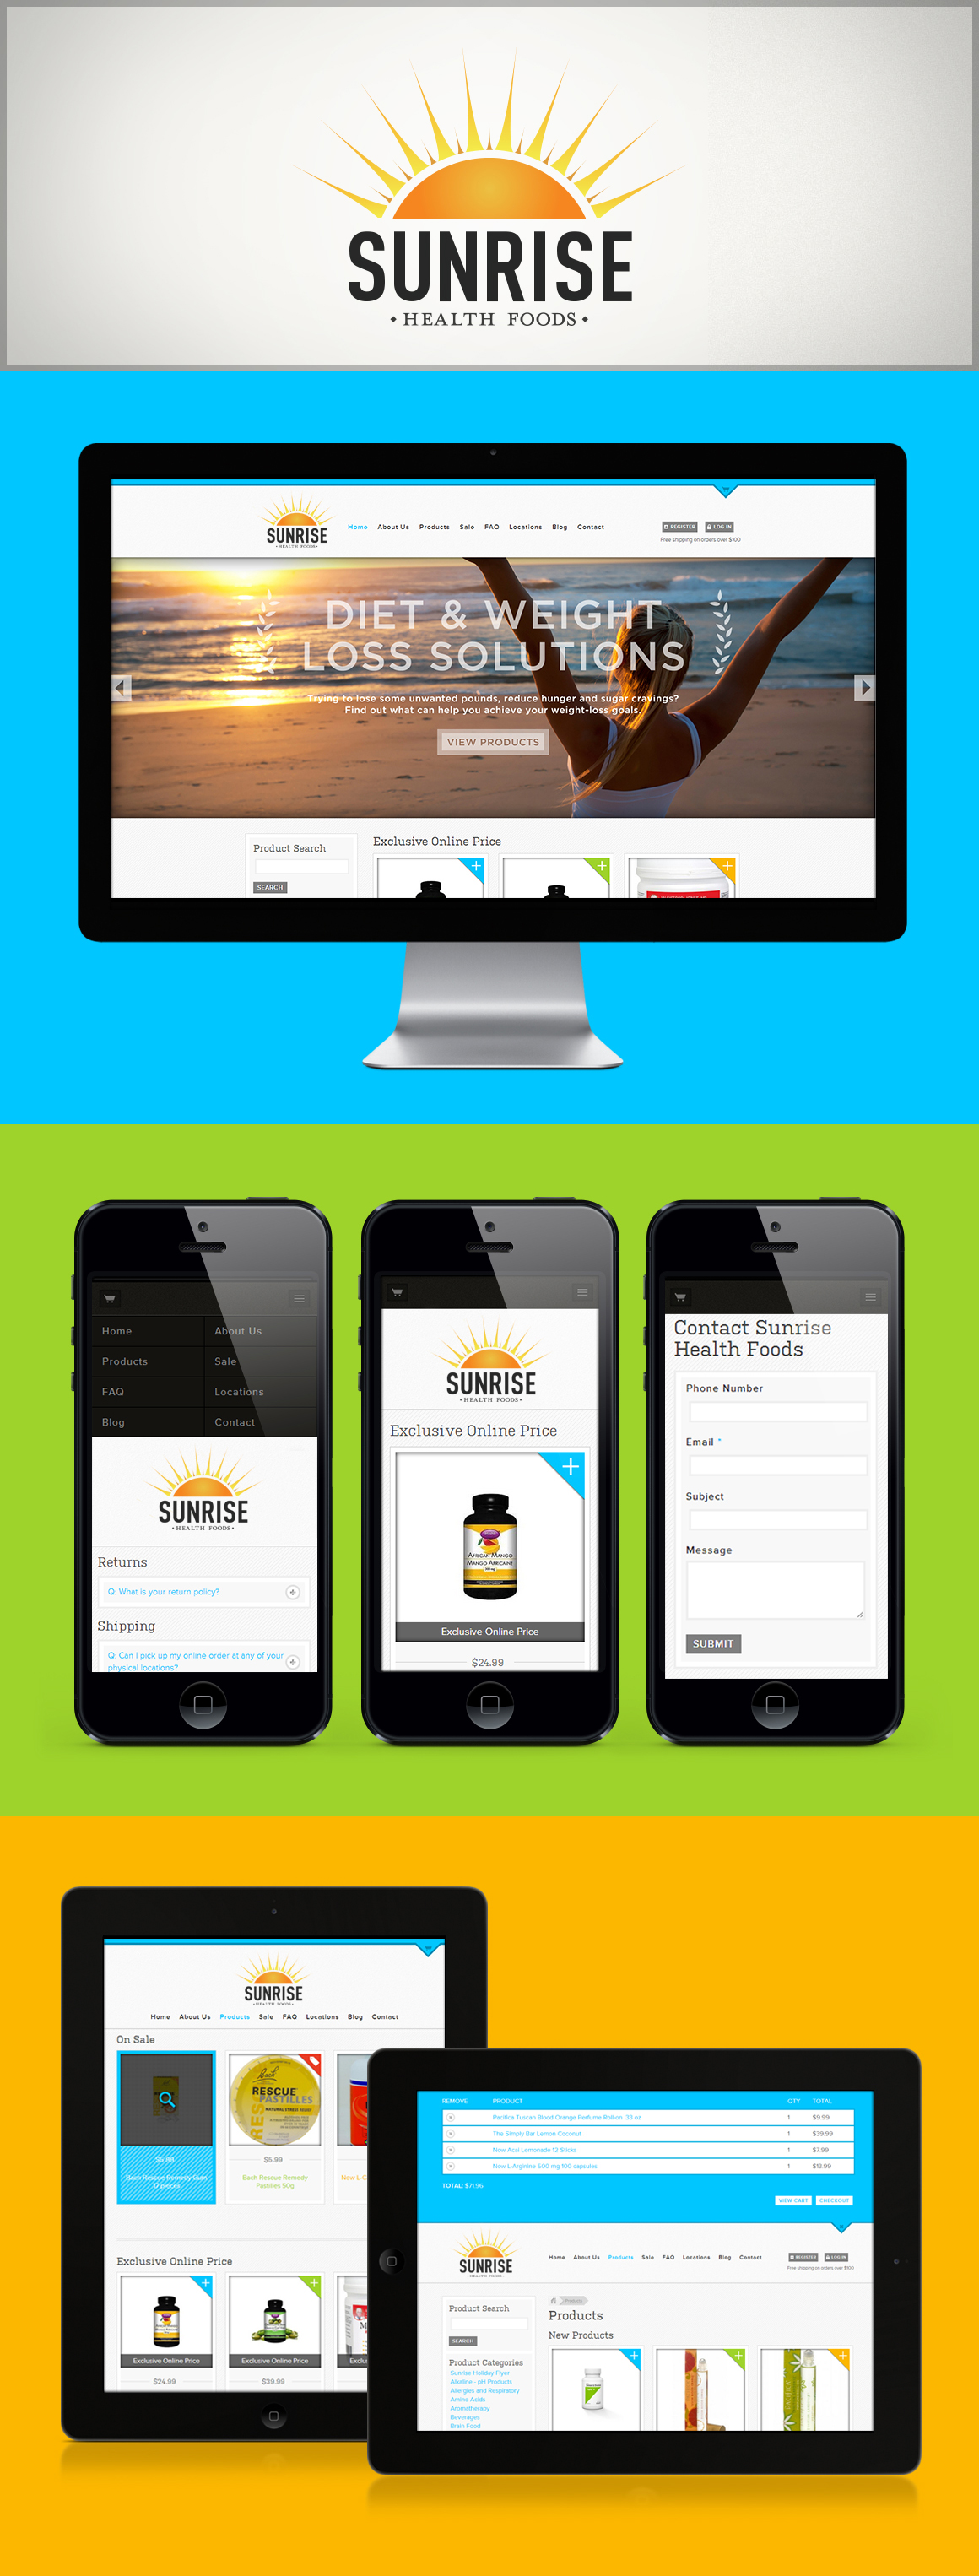 winnipeg-mobile-web-design.jpg